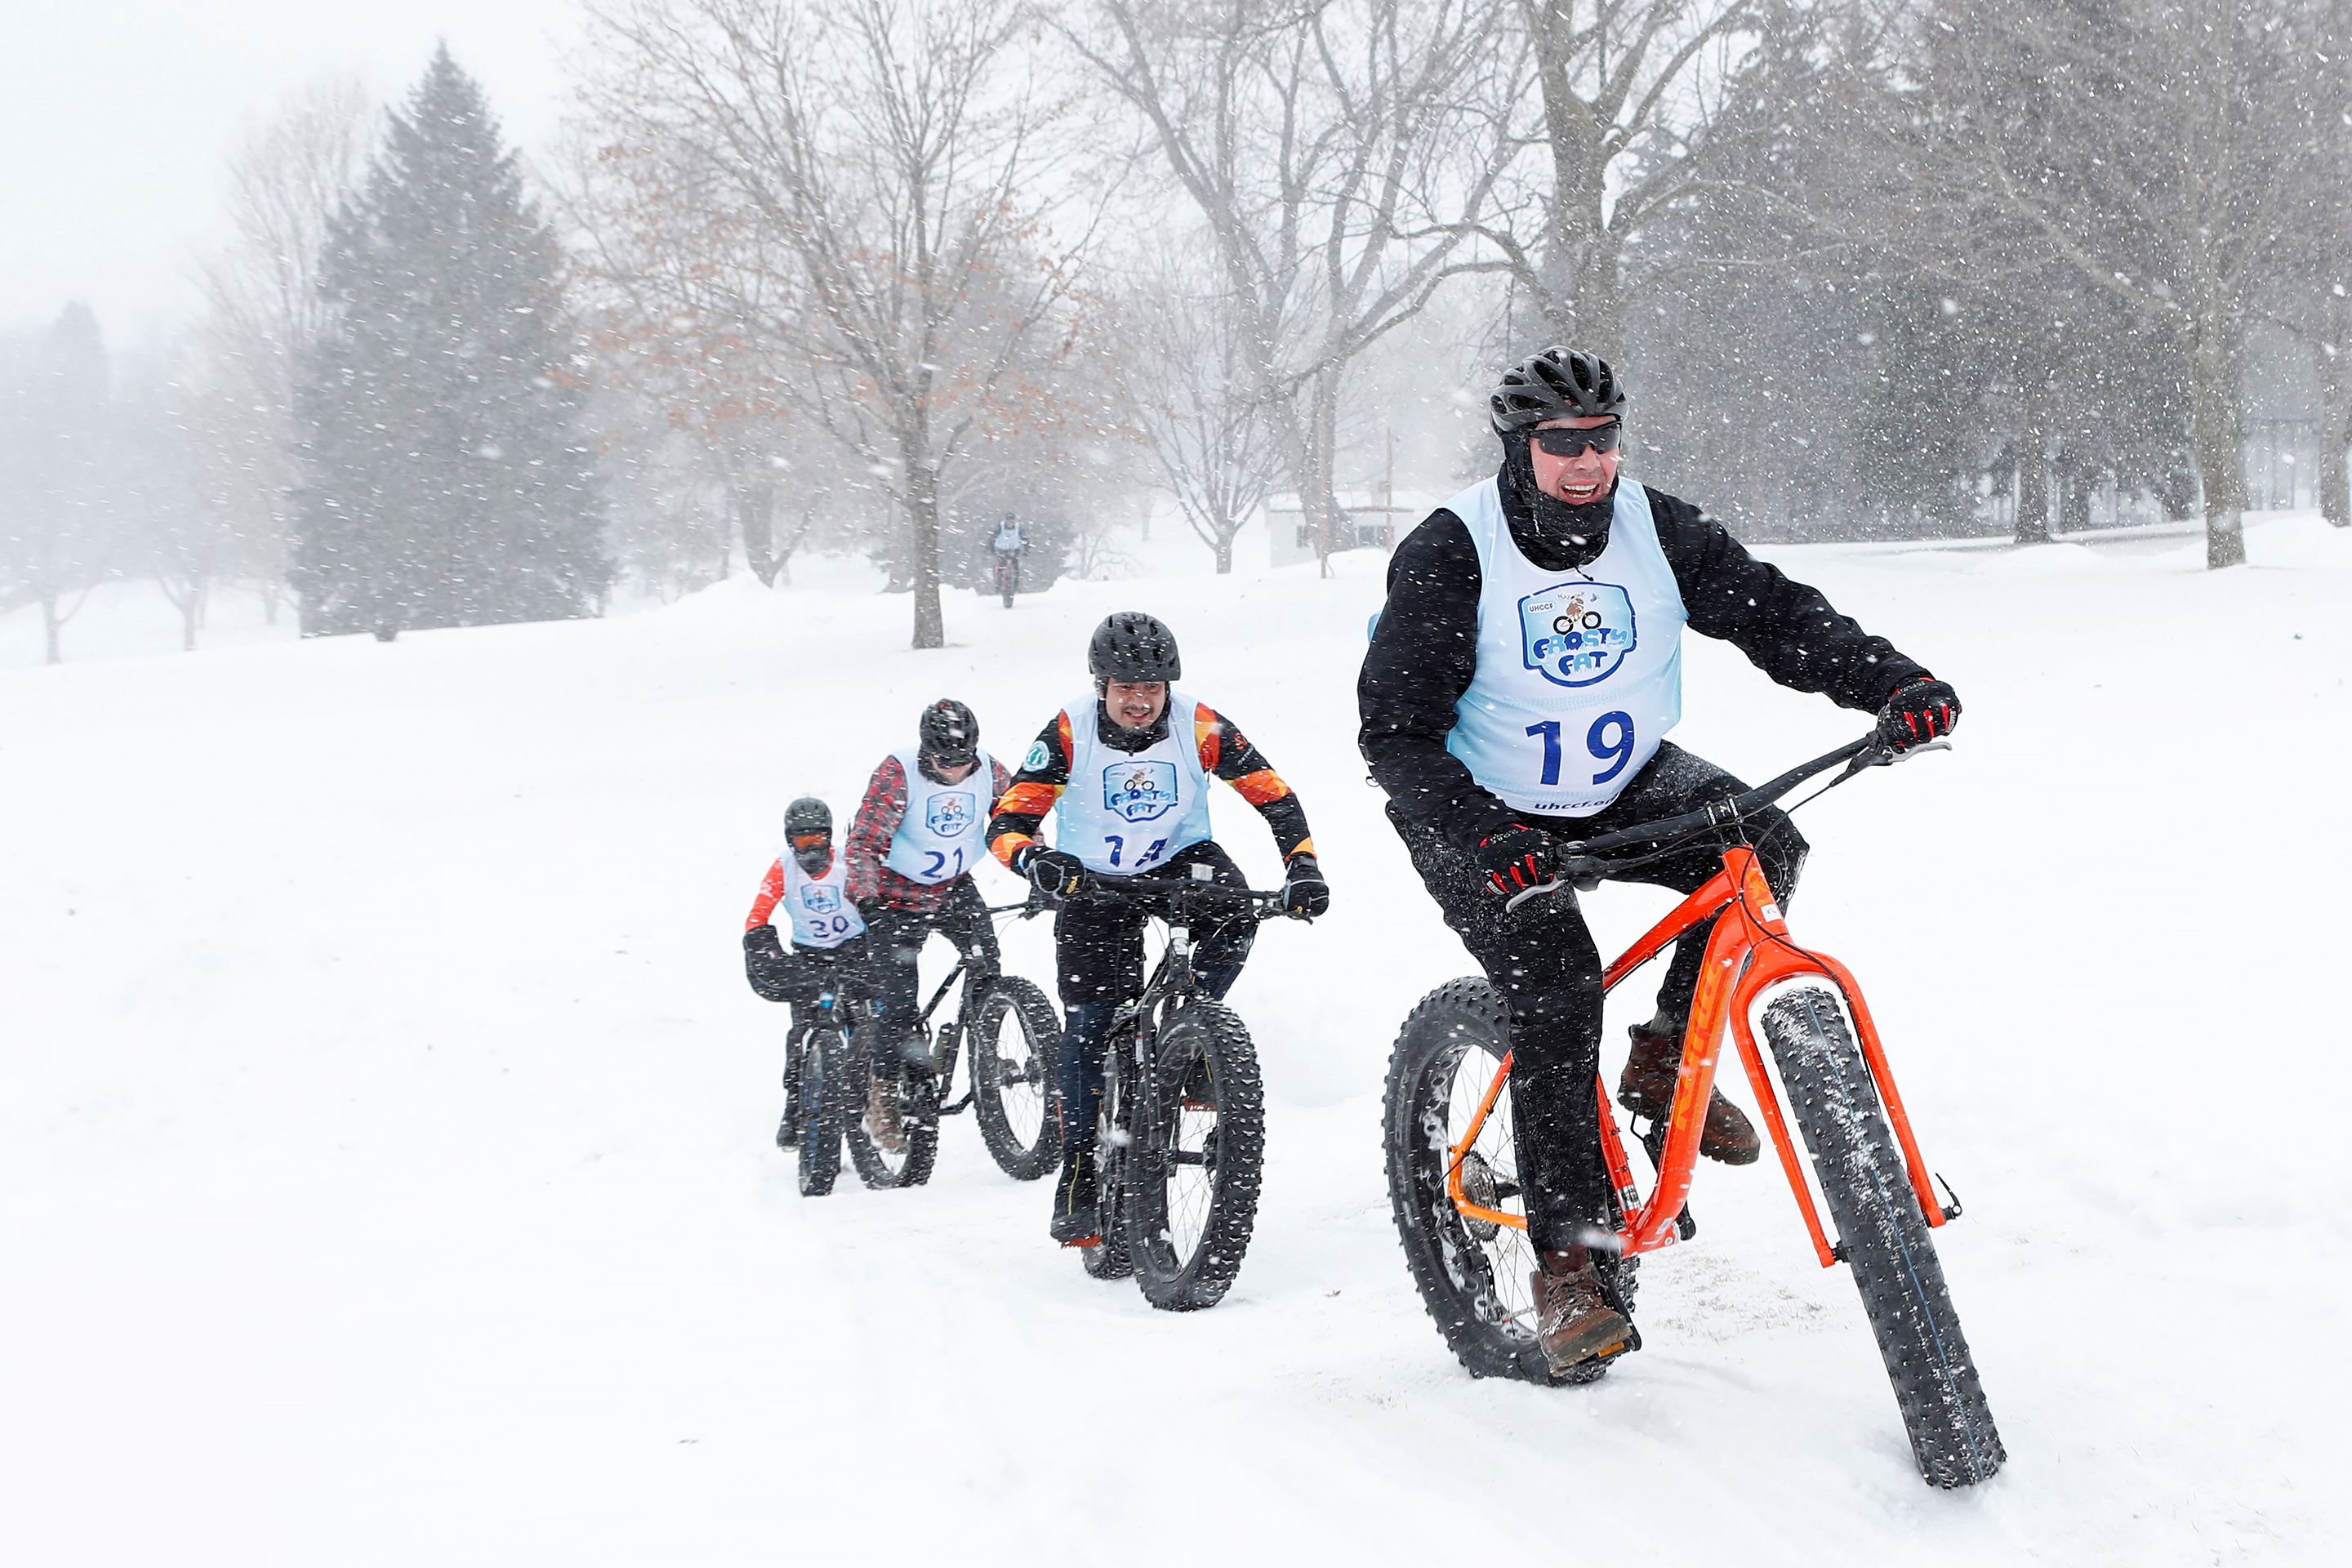 Frosty Fat Tire Festival Benefiting the UnitedHealthcare Children's Foundation, Minnetonka Beach, USA - 03 Feb 2018